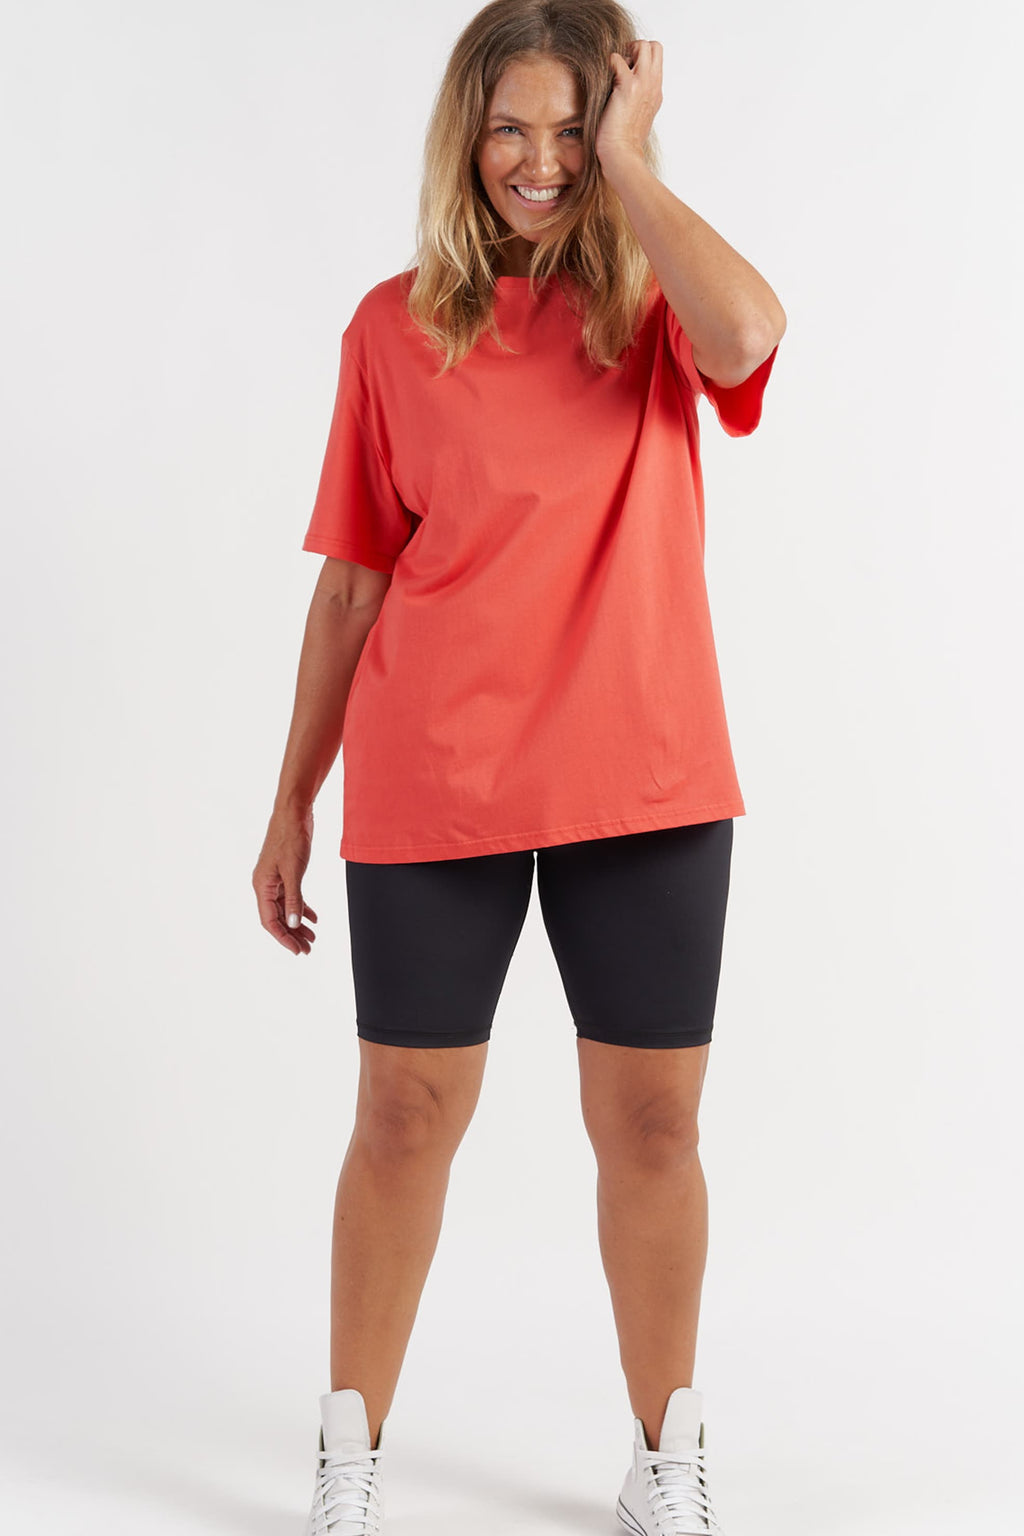 Oversized T-Shirt - Red from Active Truth USA